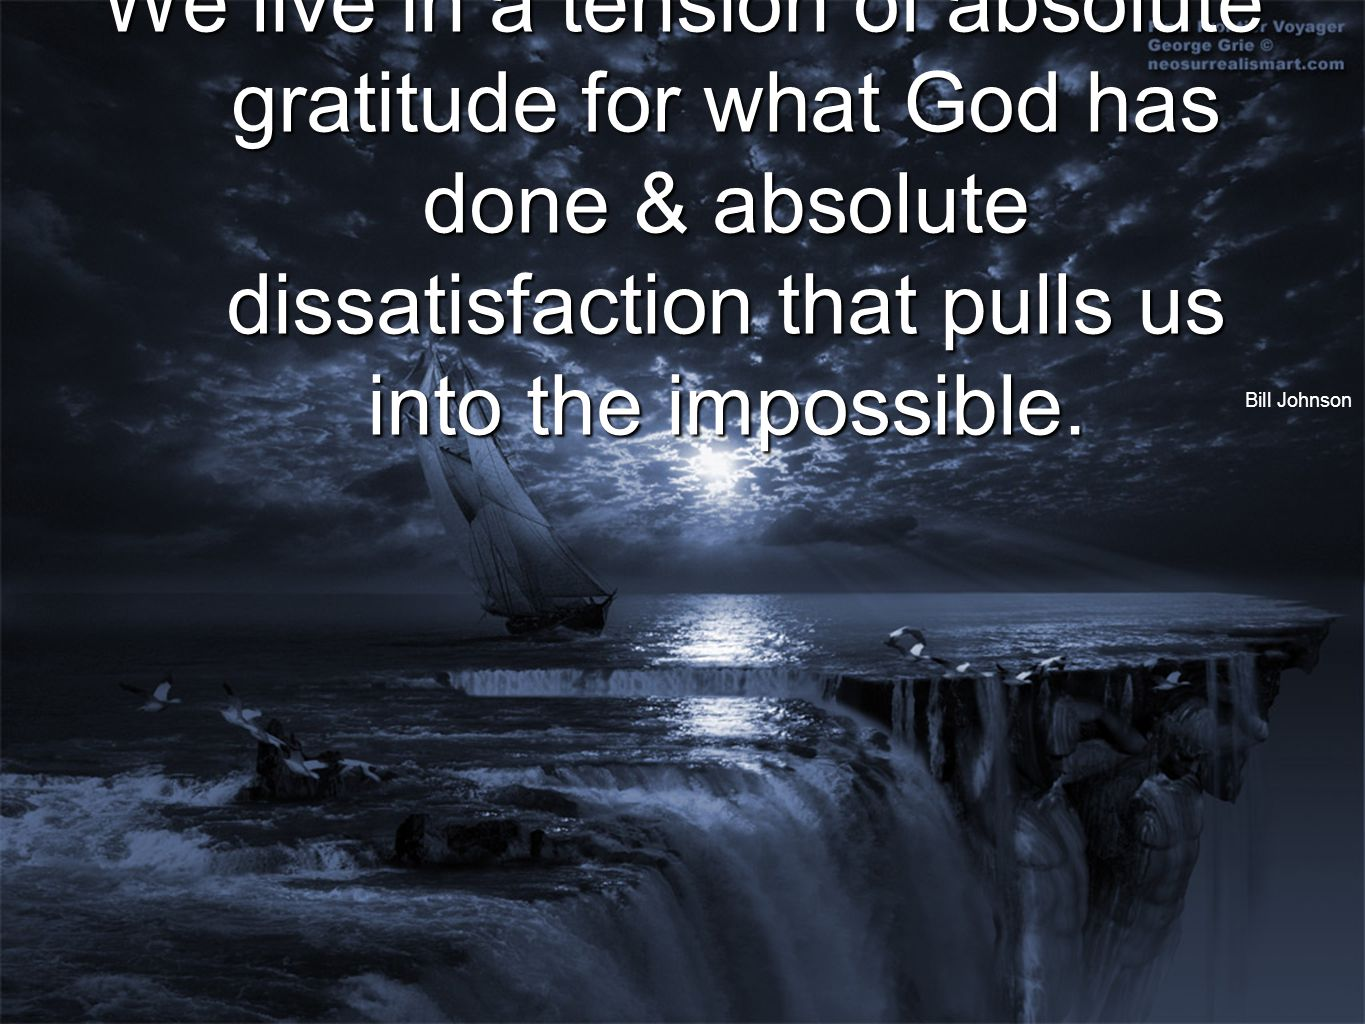 We live in a tension of absolute gratitude for what God has done & absolute dissatisfaction that pulls us into the impossible.